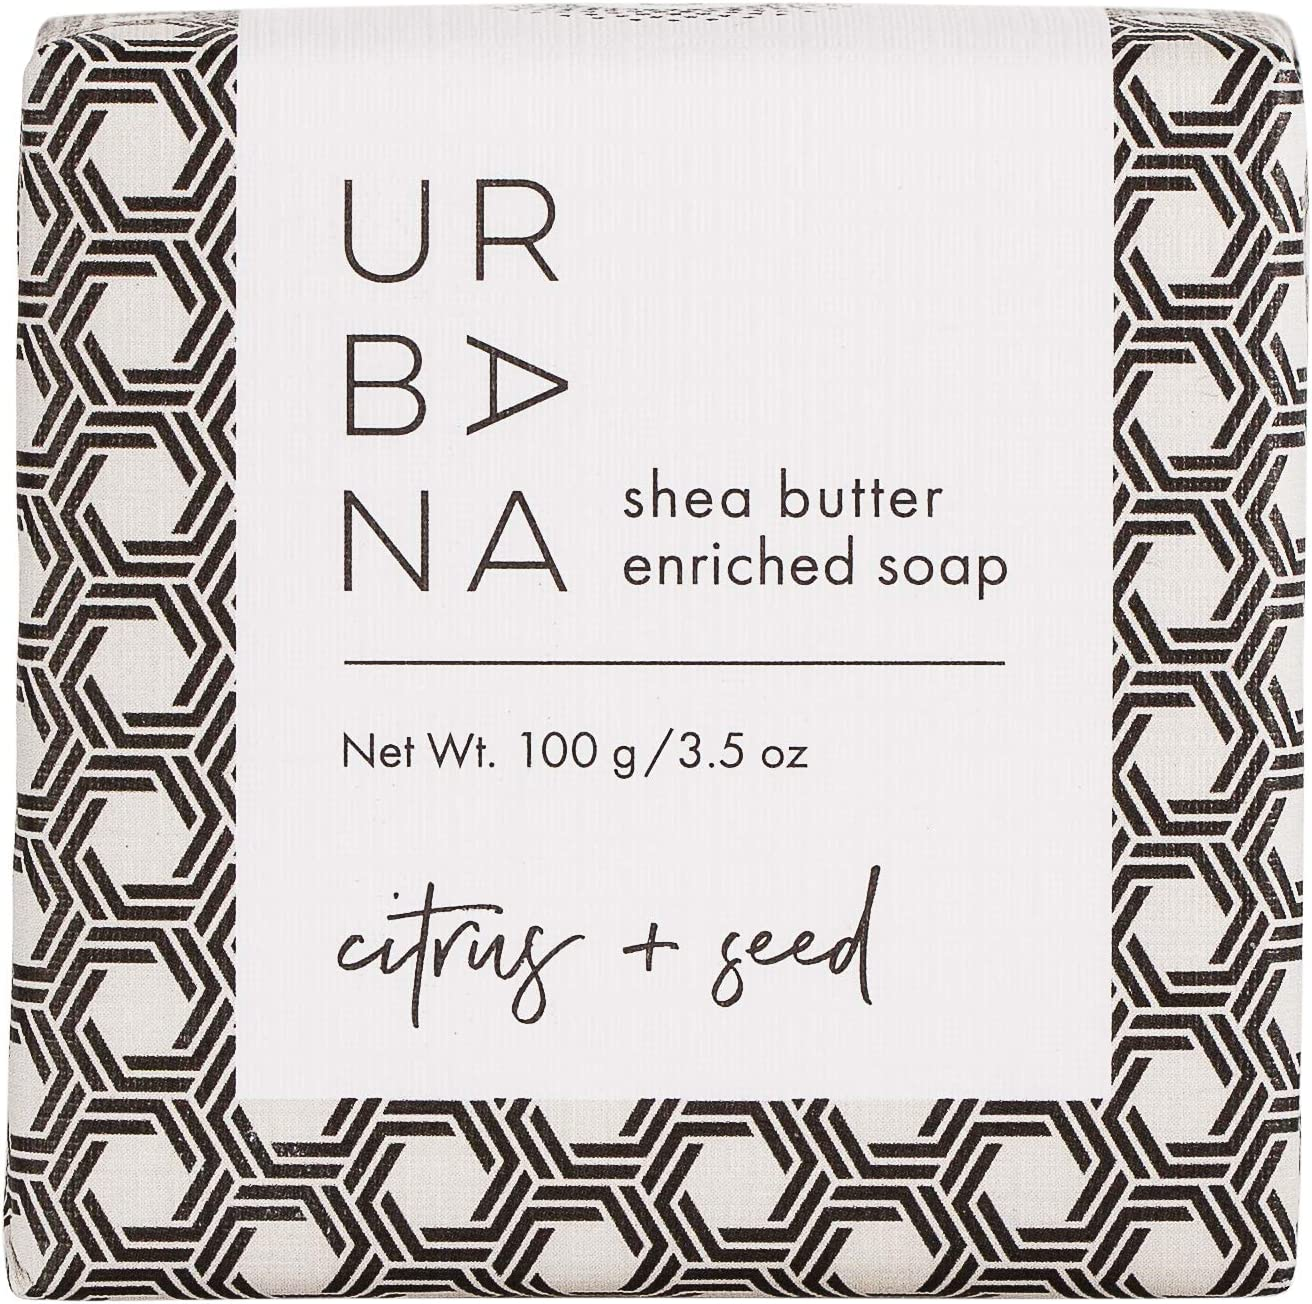 Urbana 75159CS Moisturizing Shea Butter Enriched Bar (3.5oz), EUROPEAN SOAPS (EURAQ)